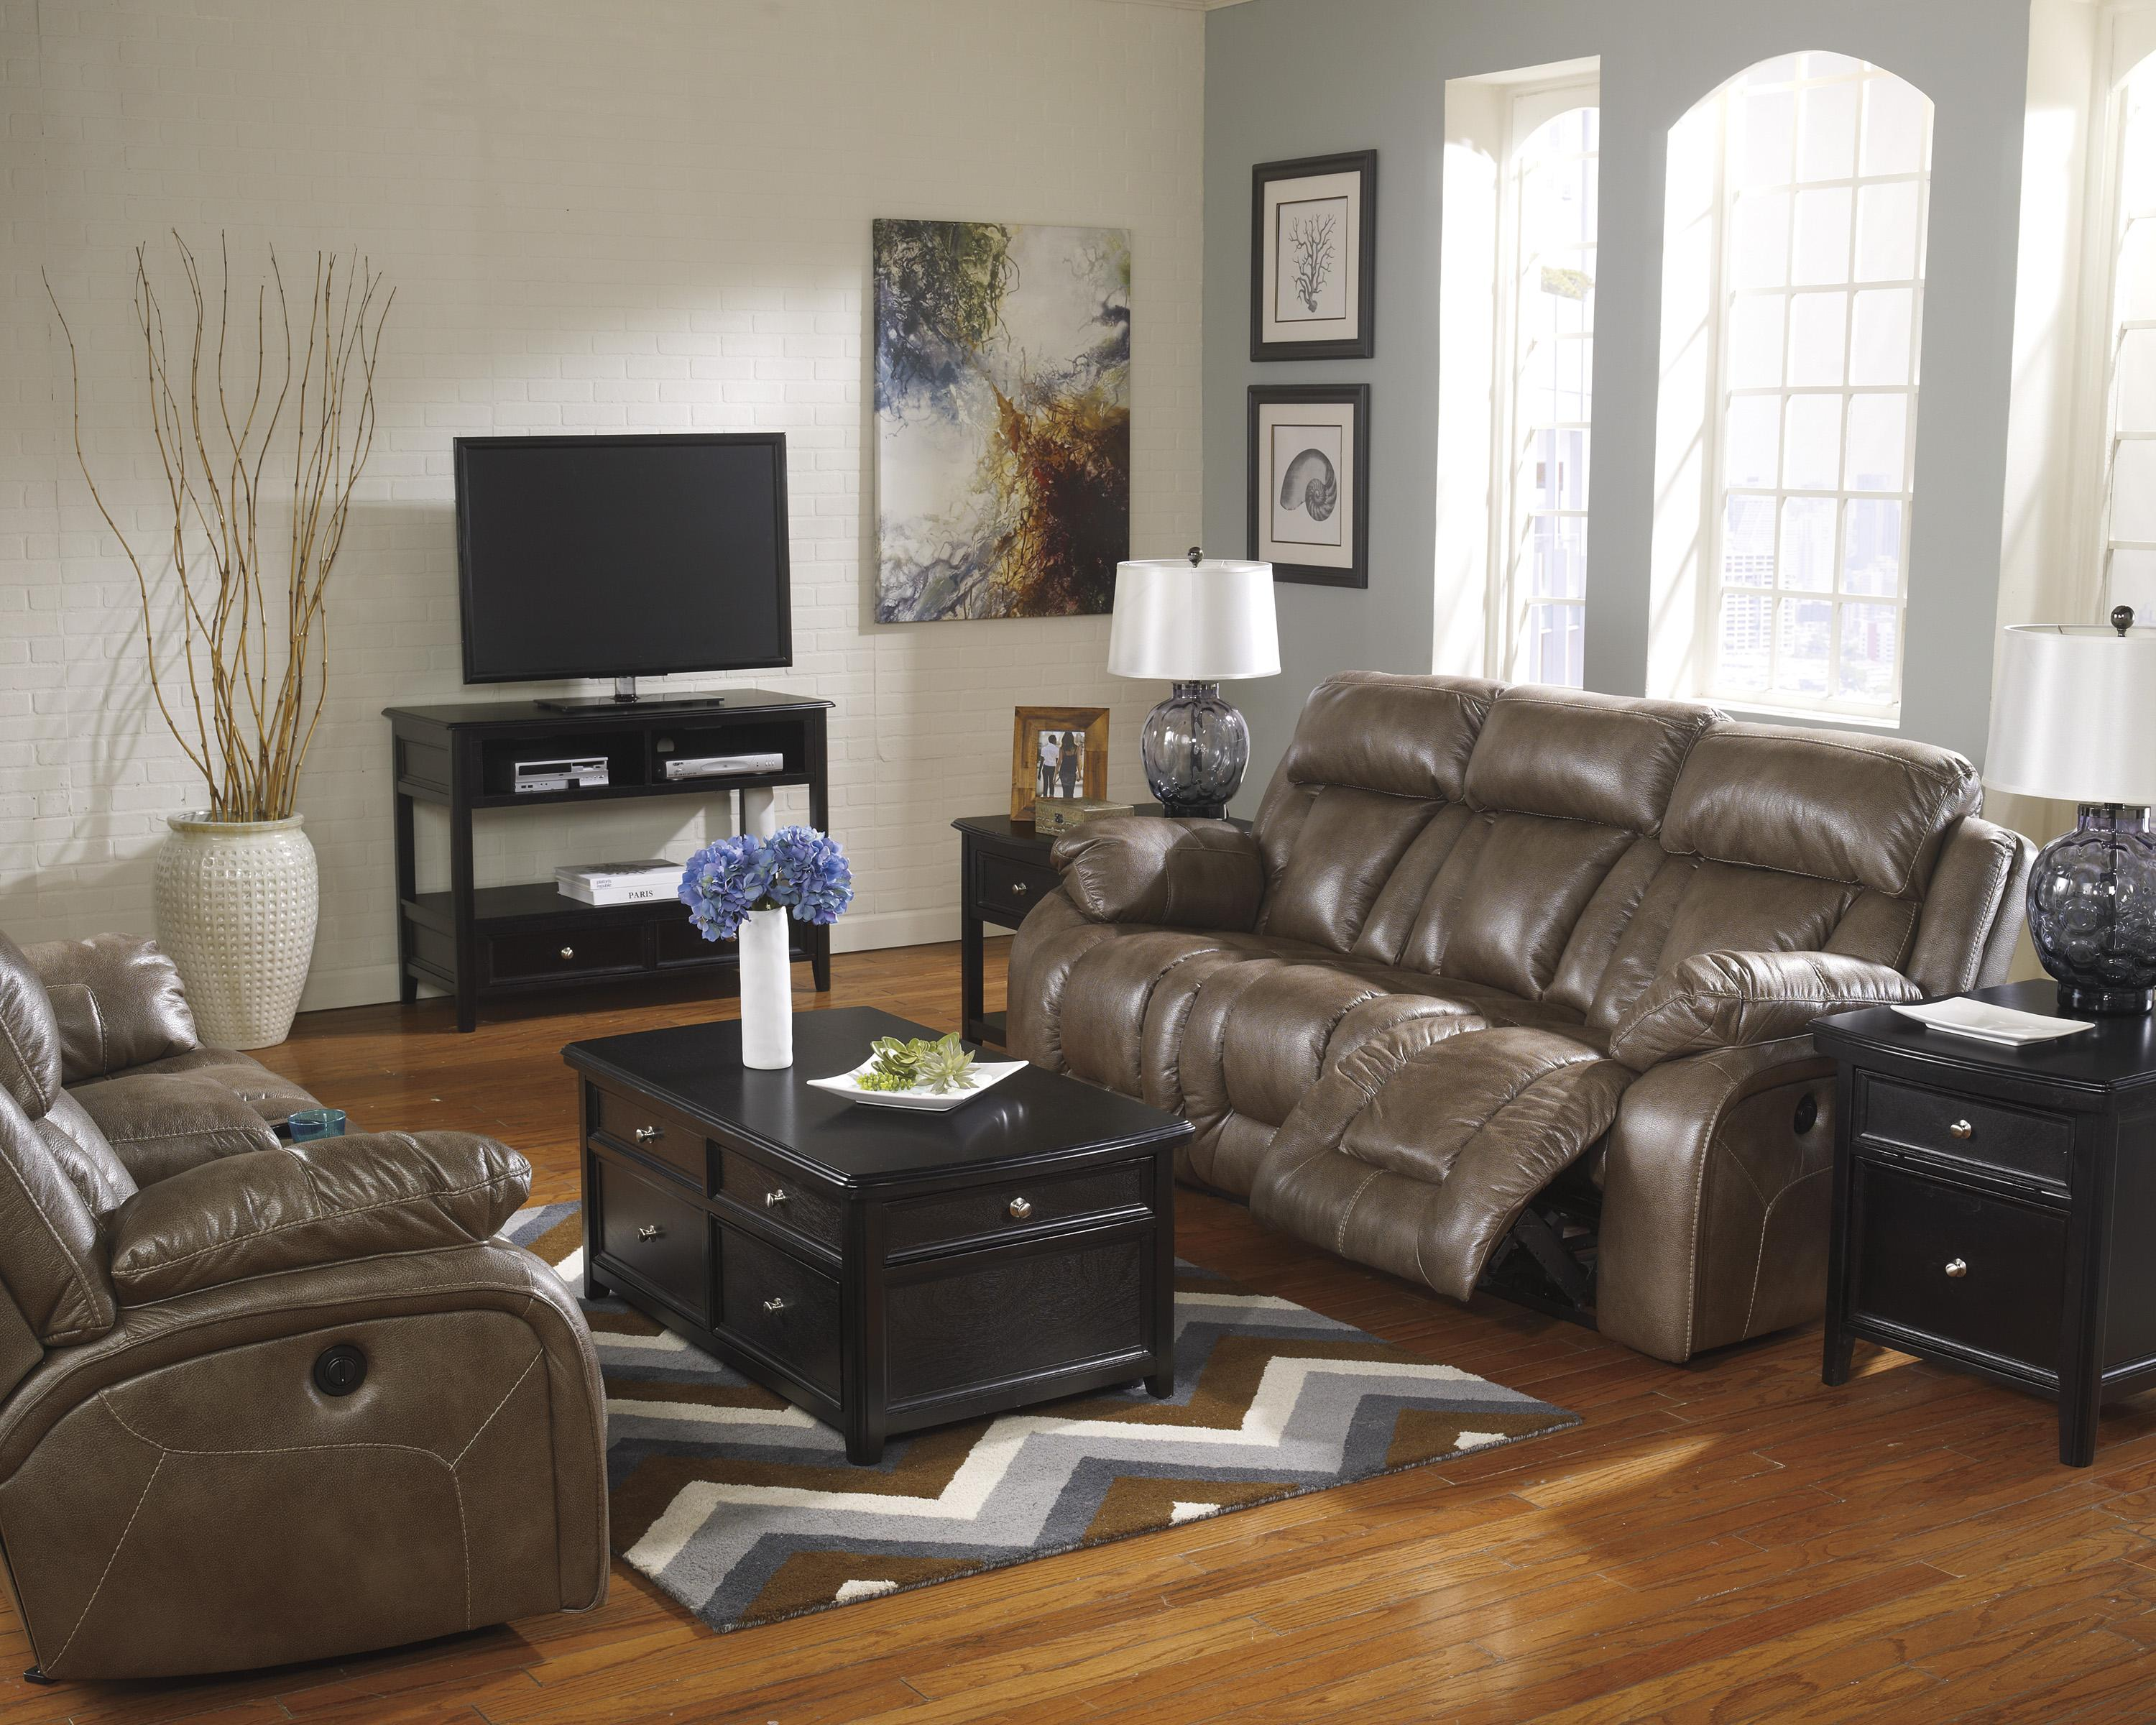 Muebles Lakeland Fl - Ashley Furniture Loral Sable Reclining Living Room Group Ahfa [mjhdah]https://images.furnituredealer.net/img/collections%2Fashley_furniture%2Floral_42200-lms-b1.jpg